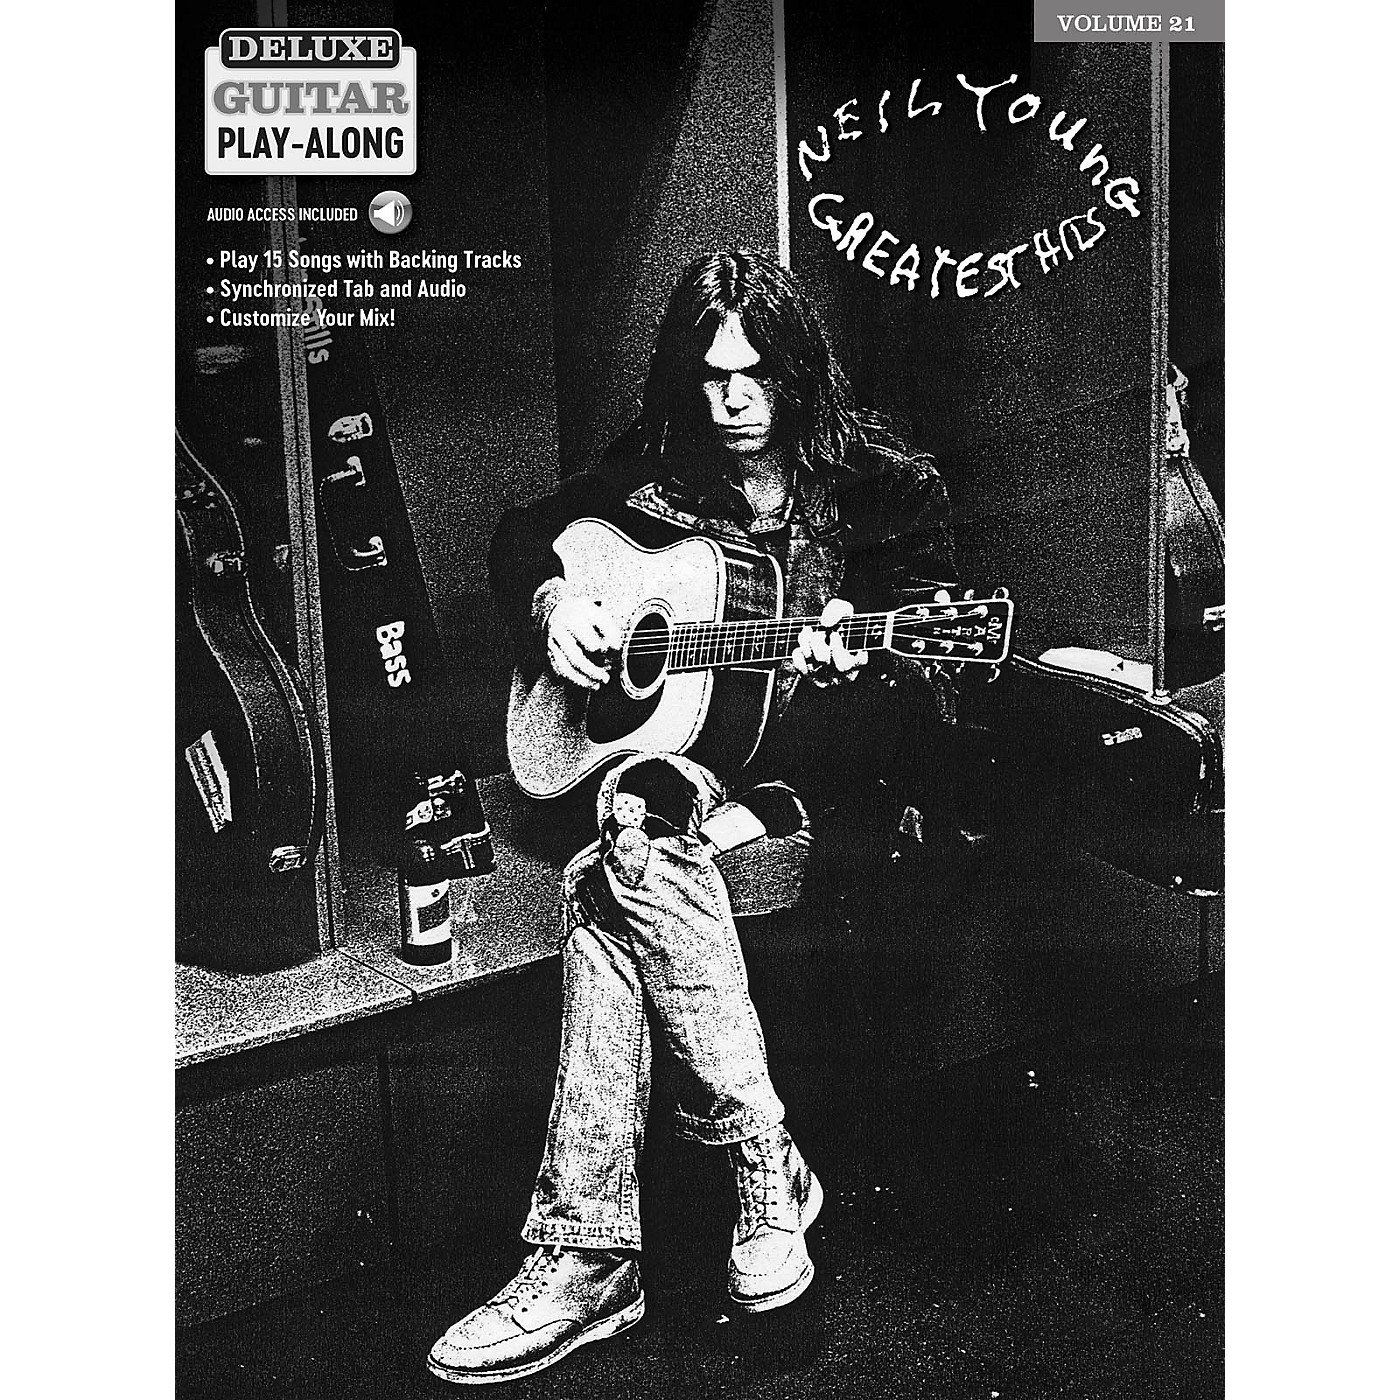 Hal Leonard Neil Young Deluxe Guitar Play-Along Volume 21 Book/Audio Online thumbnail